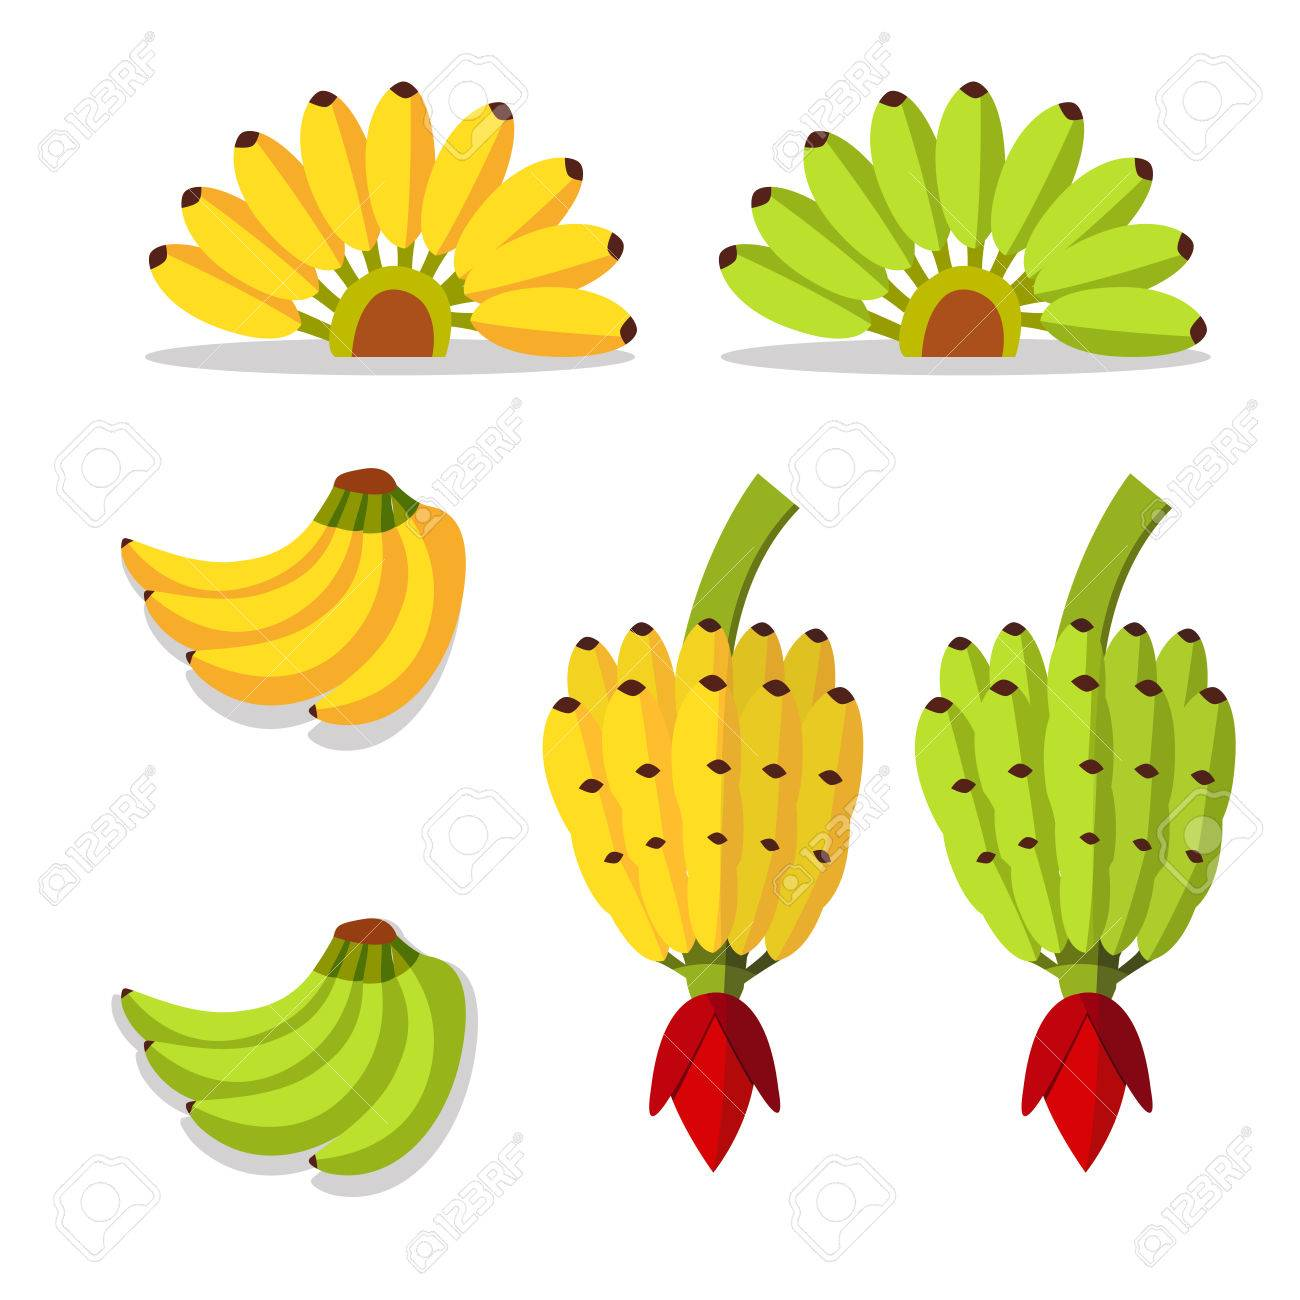 Bunch Of Bananas With Yellow And Green Color Royalty Free Cliparts.